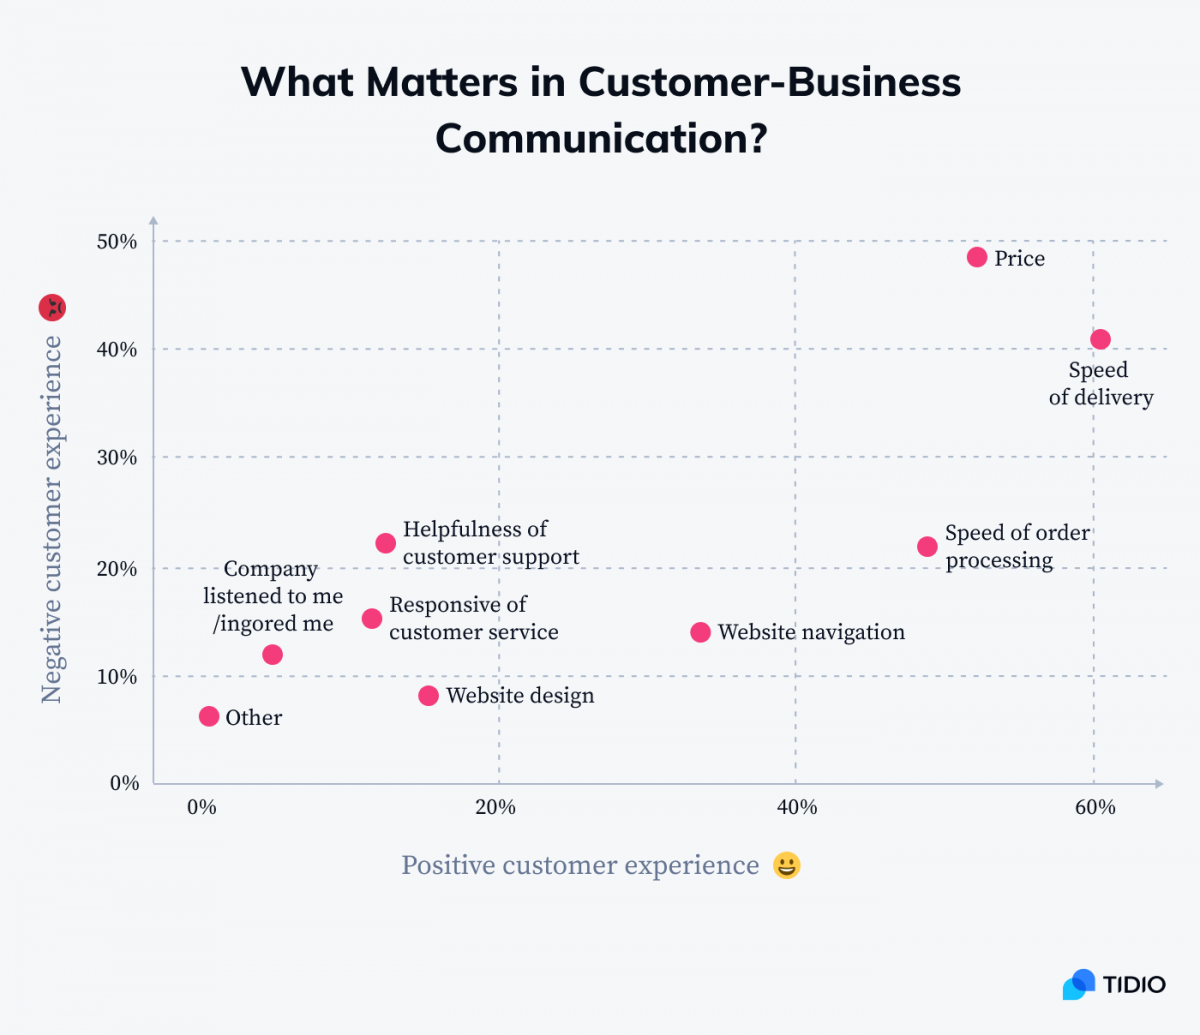 What matters in customer-business communication graph